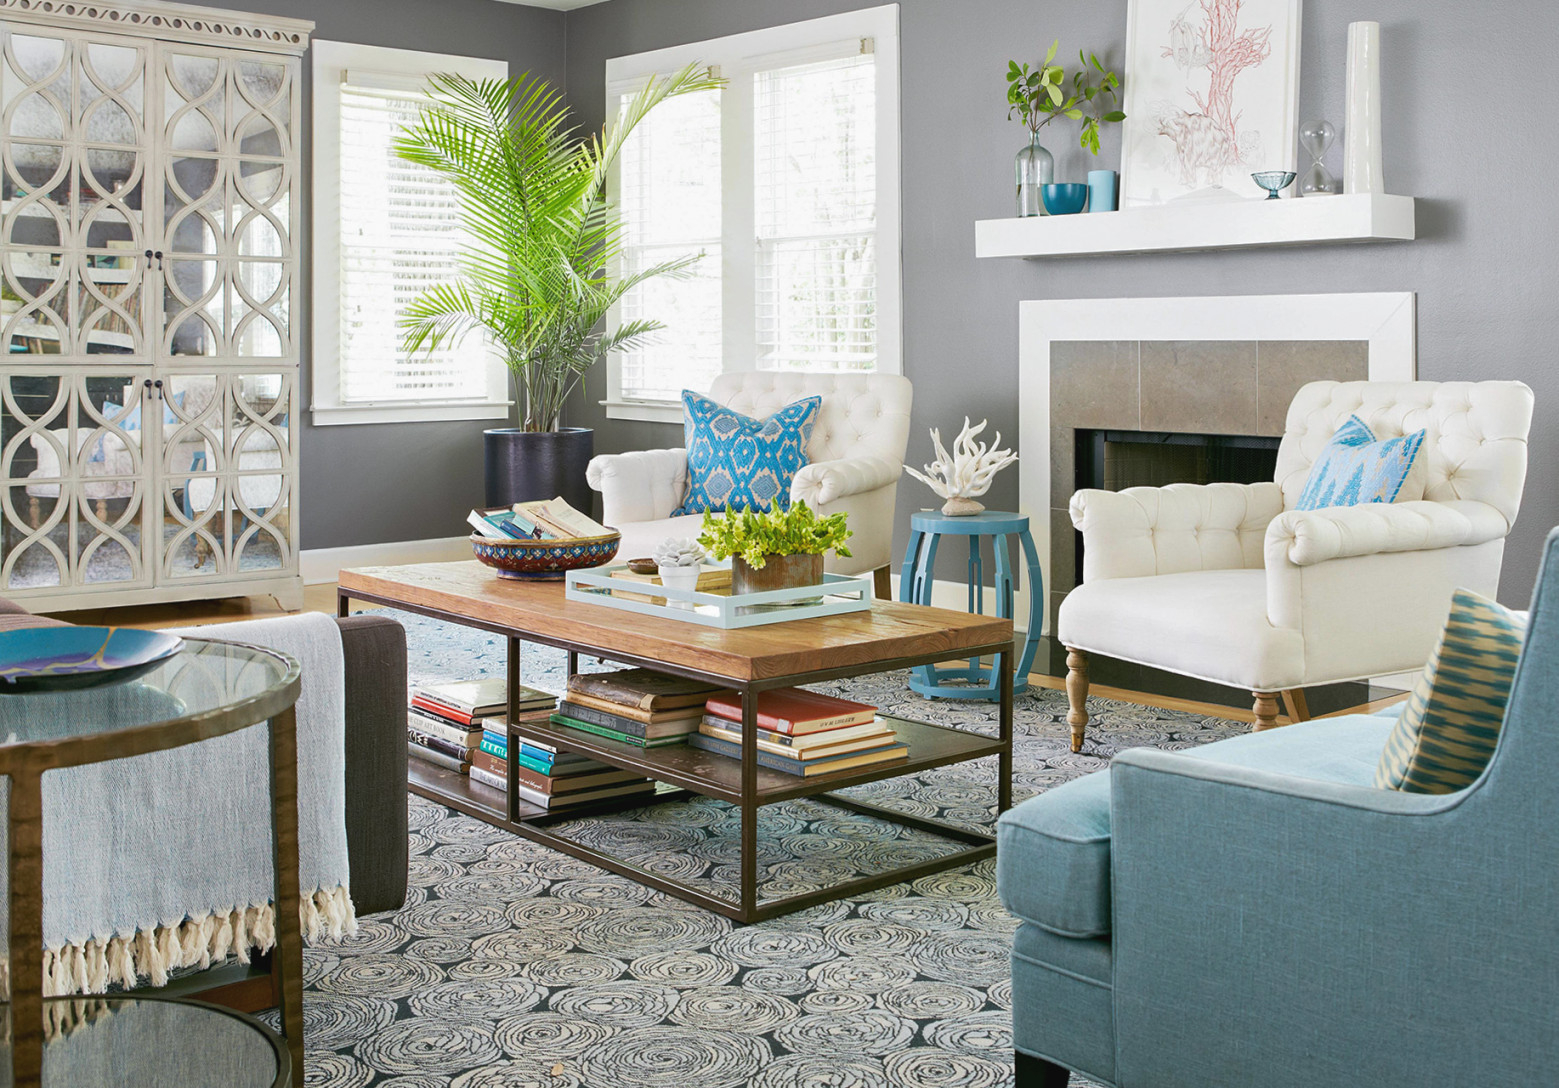 33 Living Room Color Schemes For A Cozy, Livable Space within Beautiful Gallery Gray And Teal Living Room